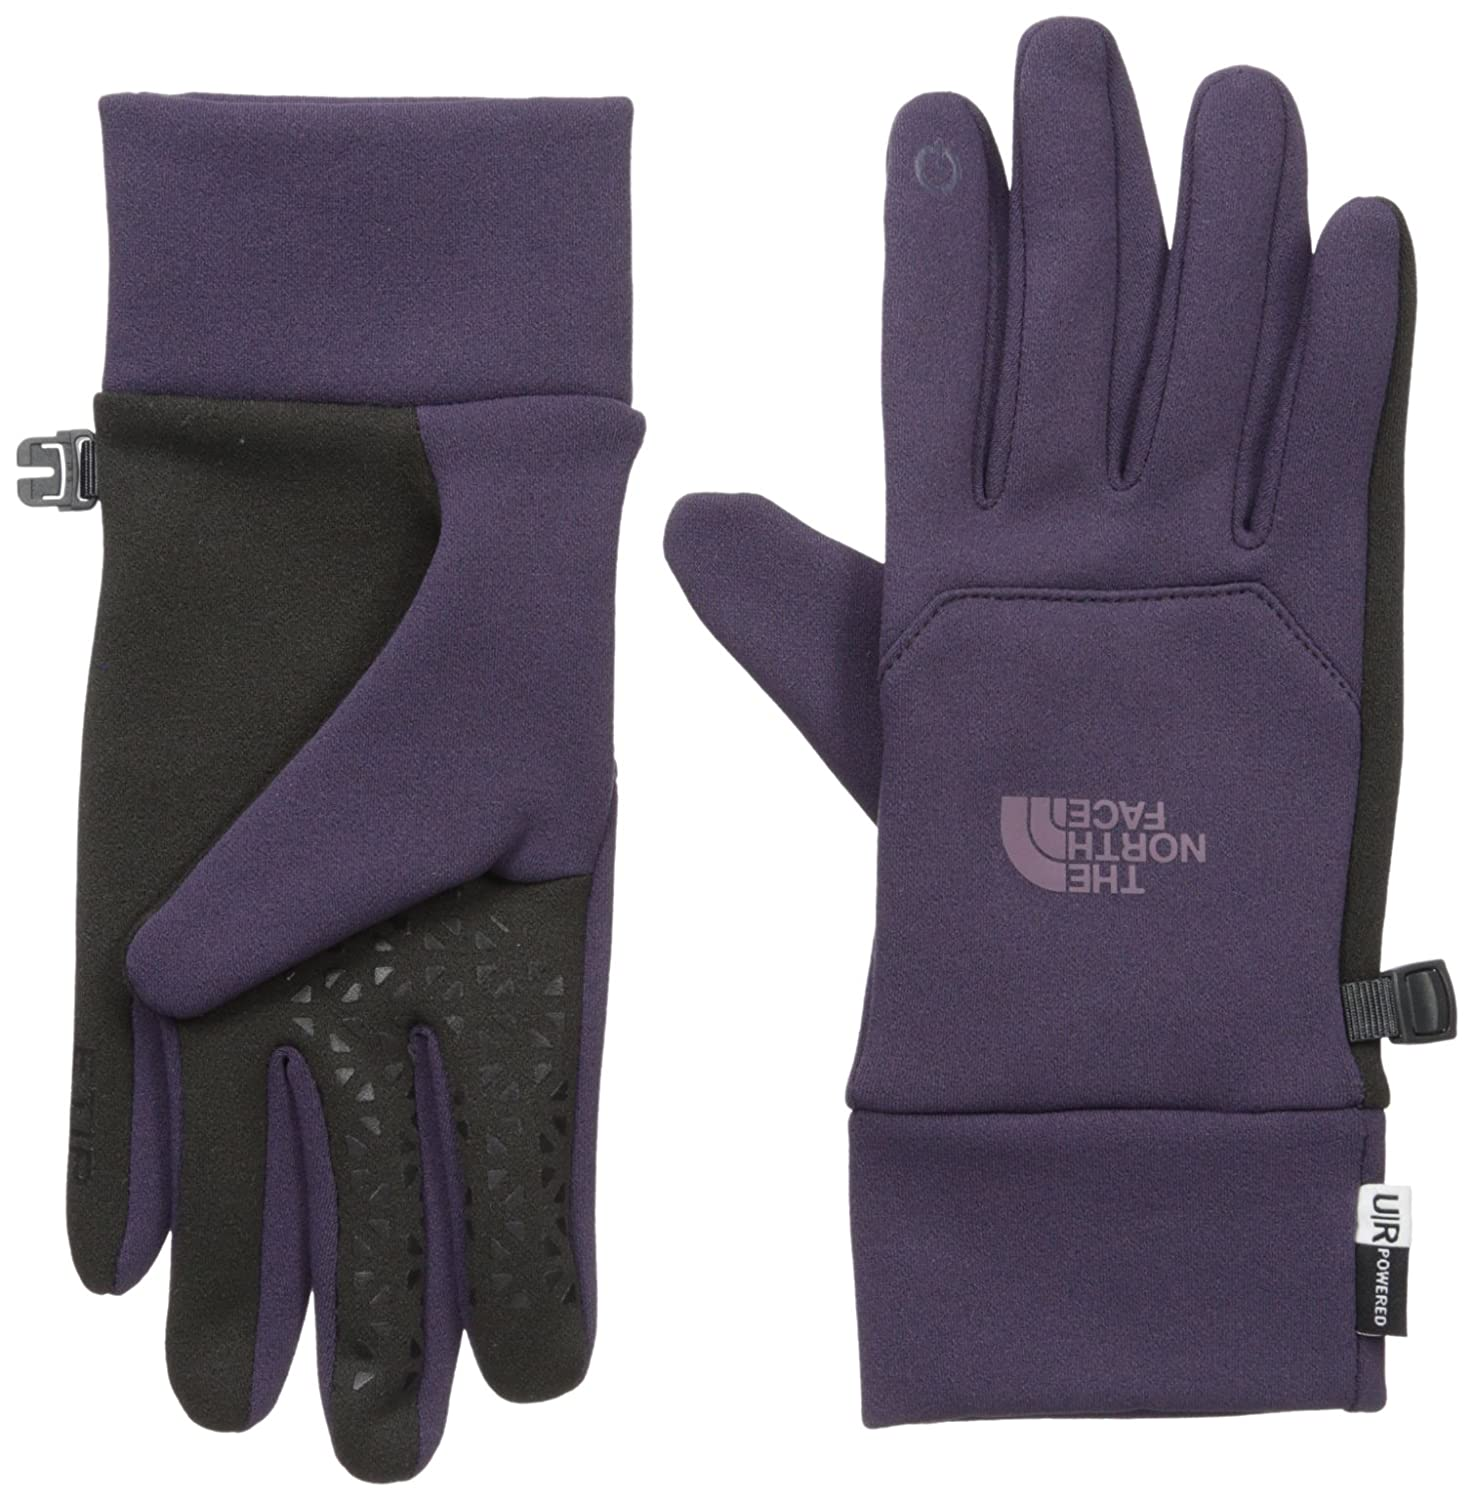 dfbc217a4 The North Face Men Etip Outdoor Gloves: Amazon.co.uk: Sports & Outdoors